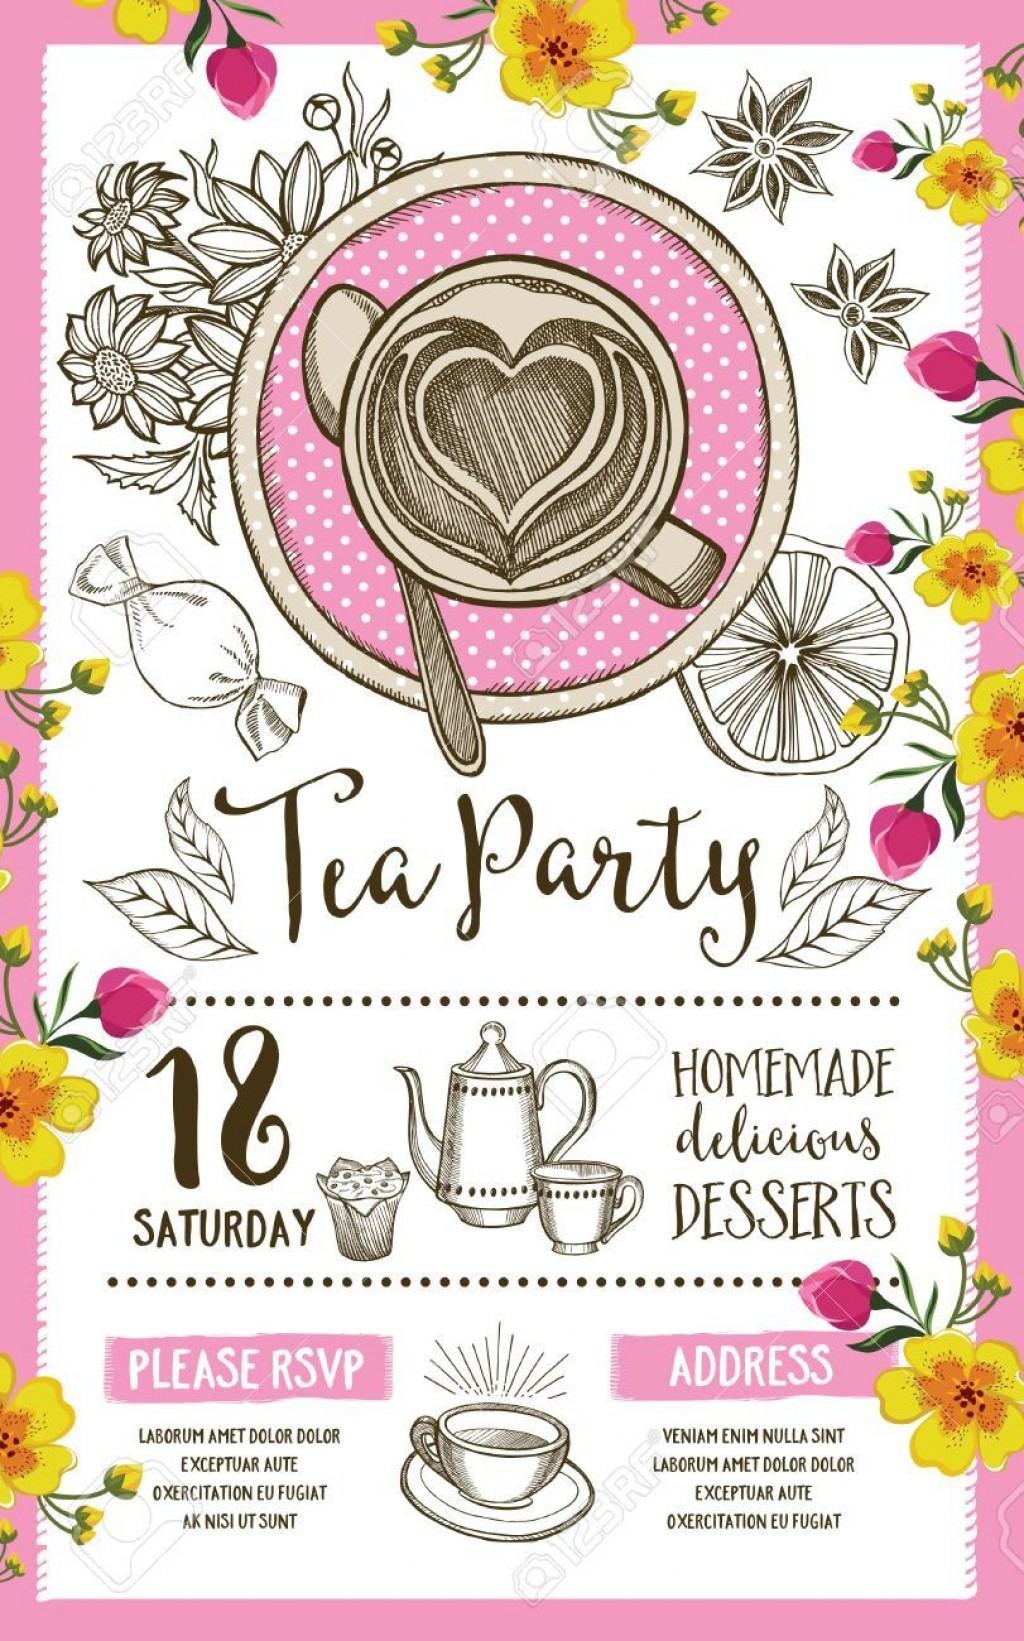 004 Wonderful Tea Party Invitation Template Inspiration  Card Victorian Wording For Bridal ShowerLarge